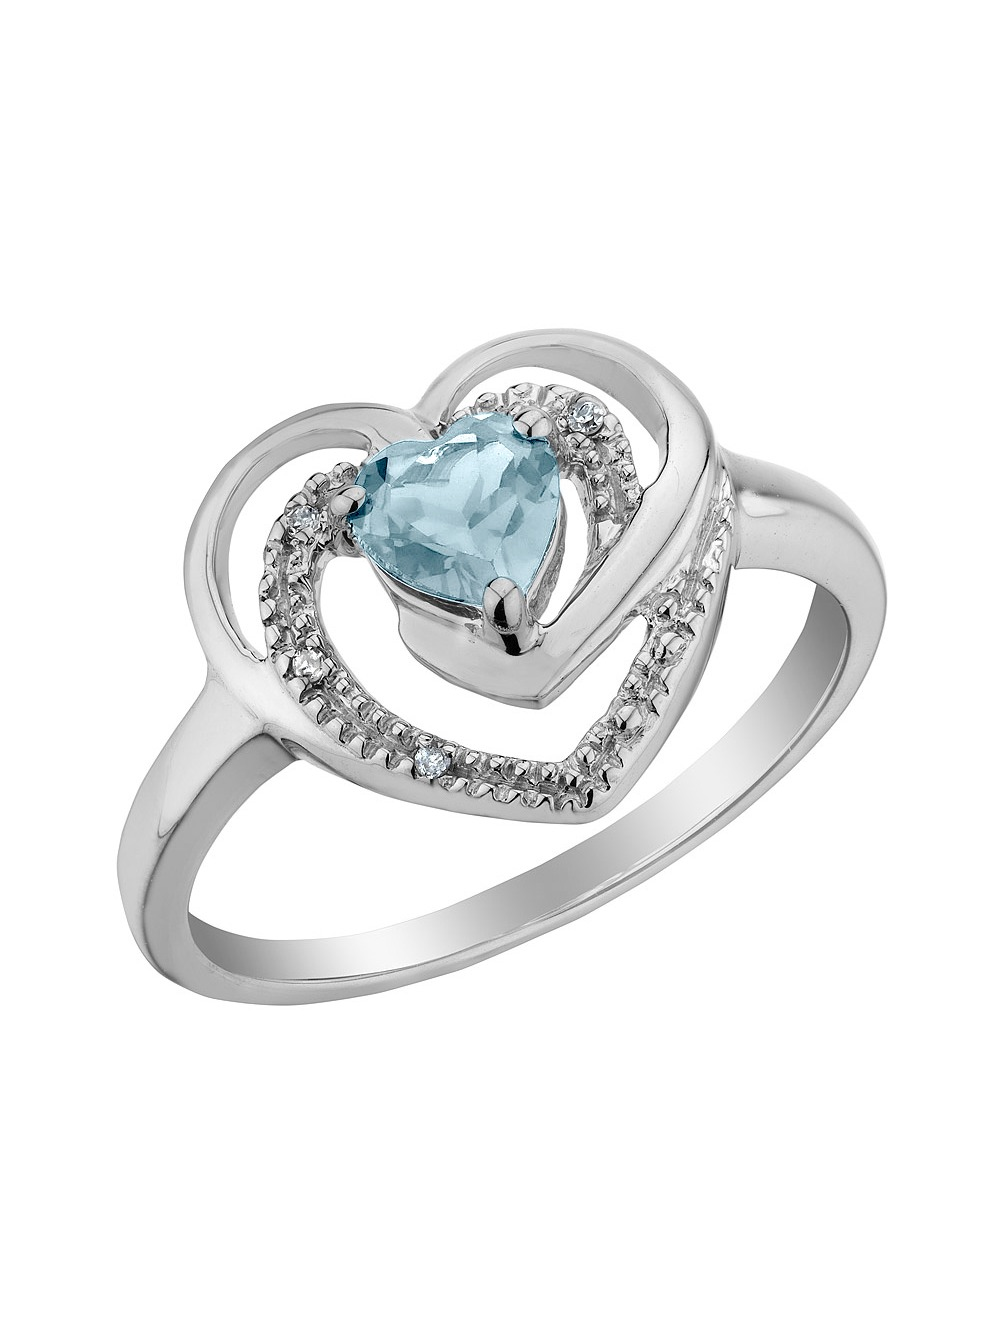 Aquamarine Heart Ring with Diamonds 1/3 Carat (ctw) in Sterling Silver